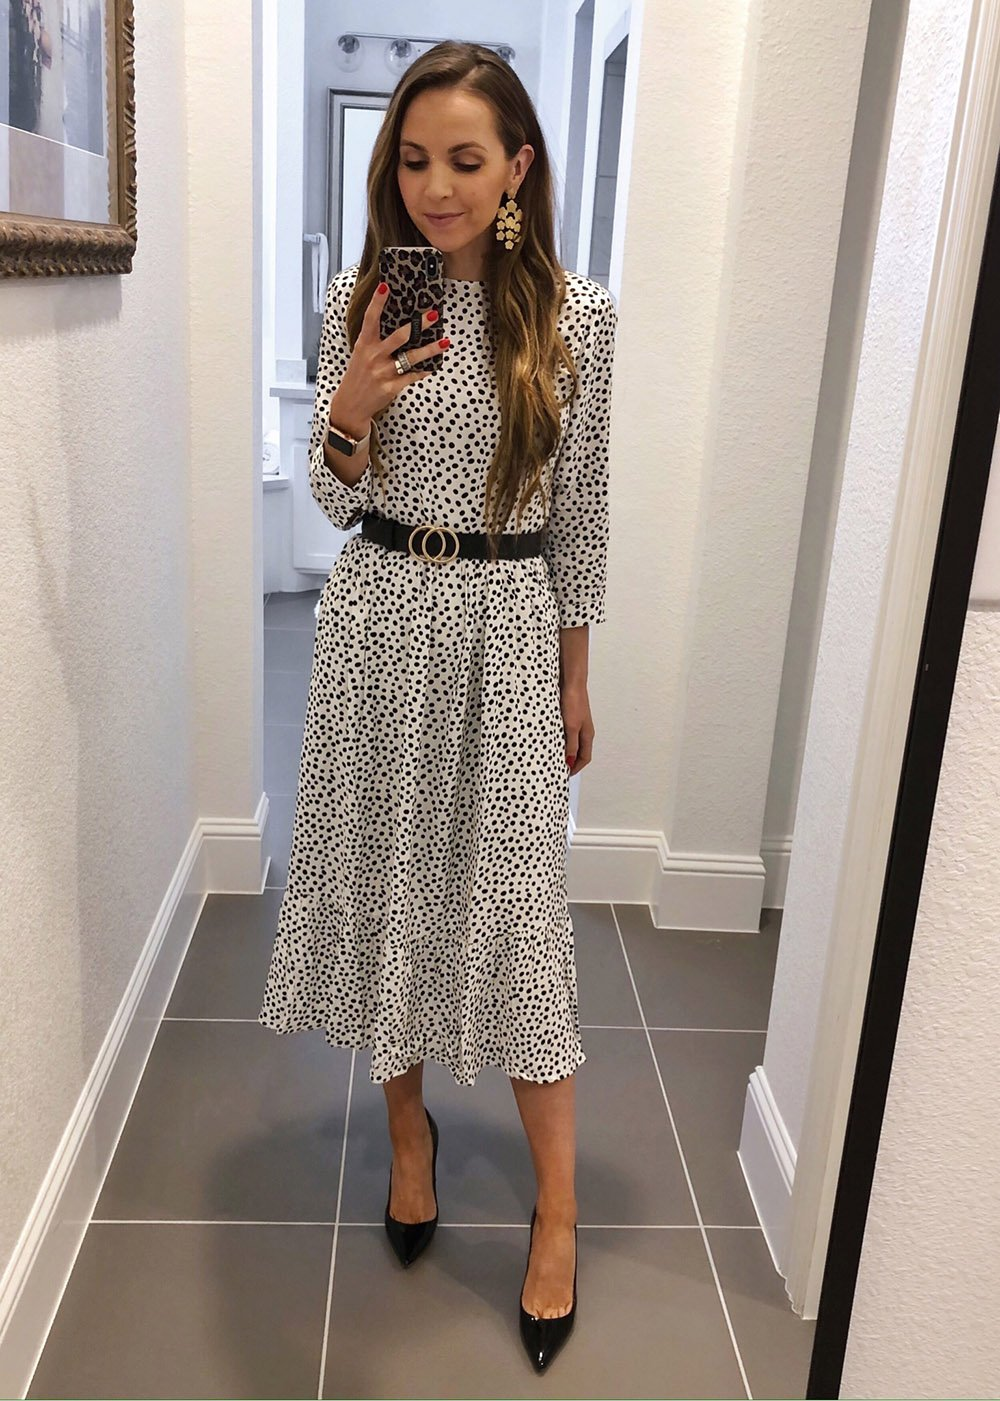 instagram outfits - White polka dot midi skirt